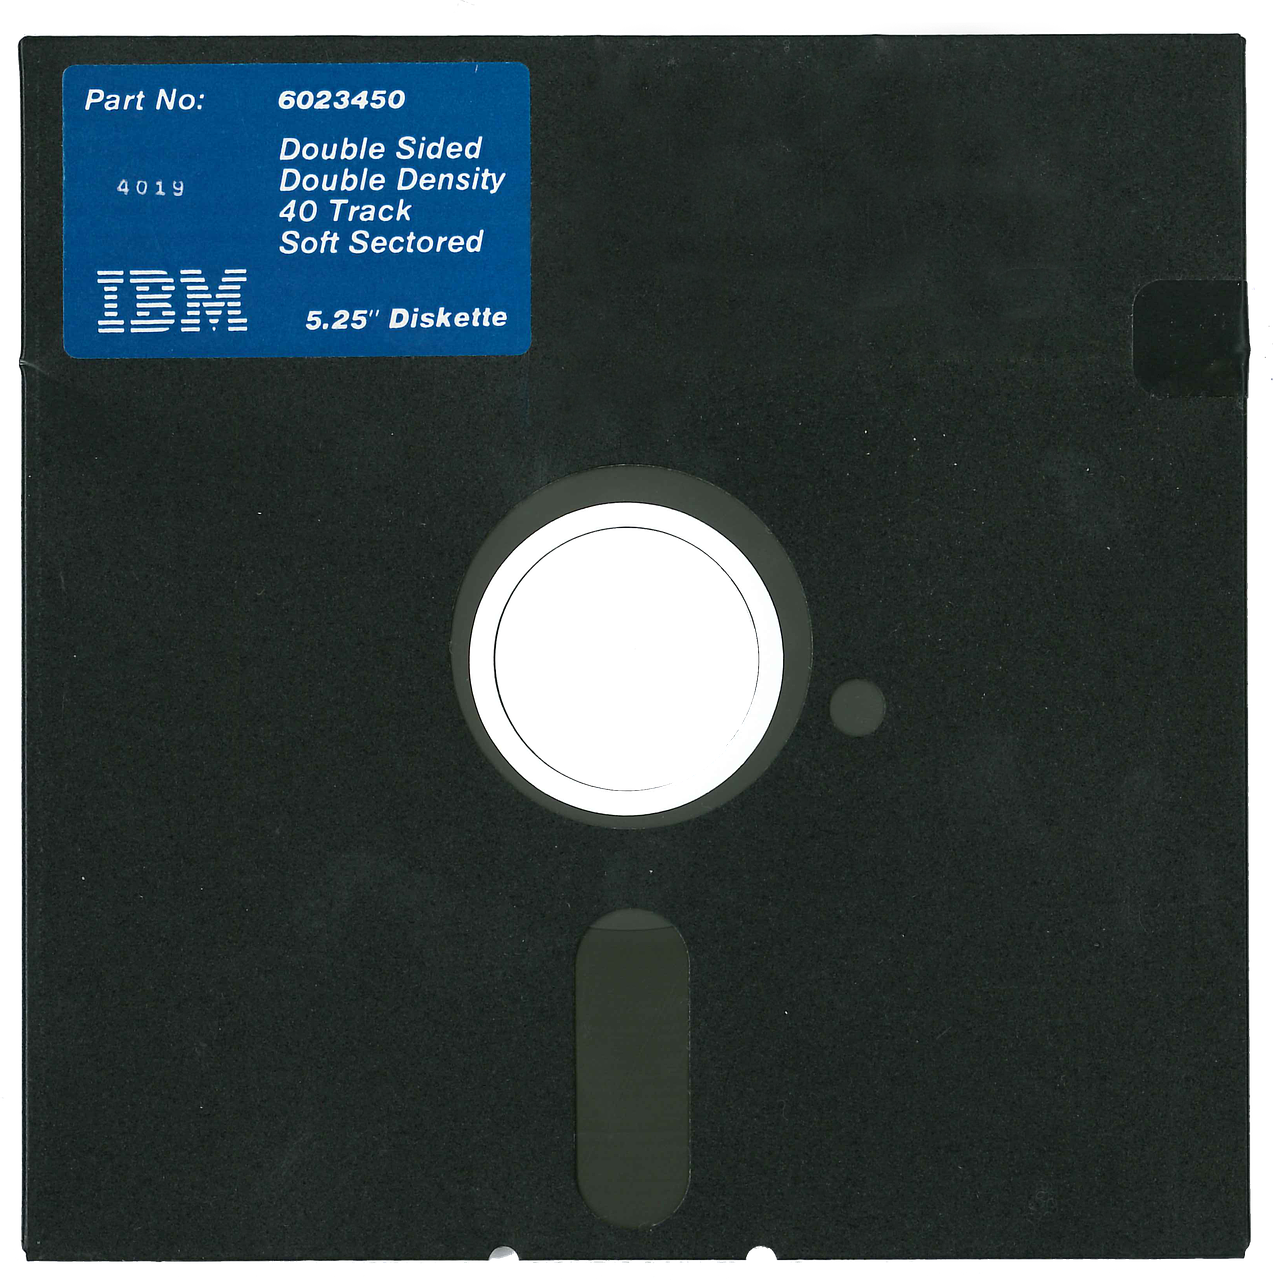 1989 - The first known computer rasnomware distributed on a floppy disk